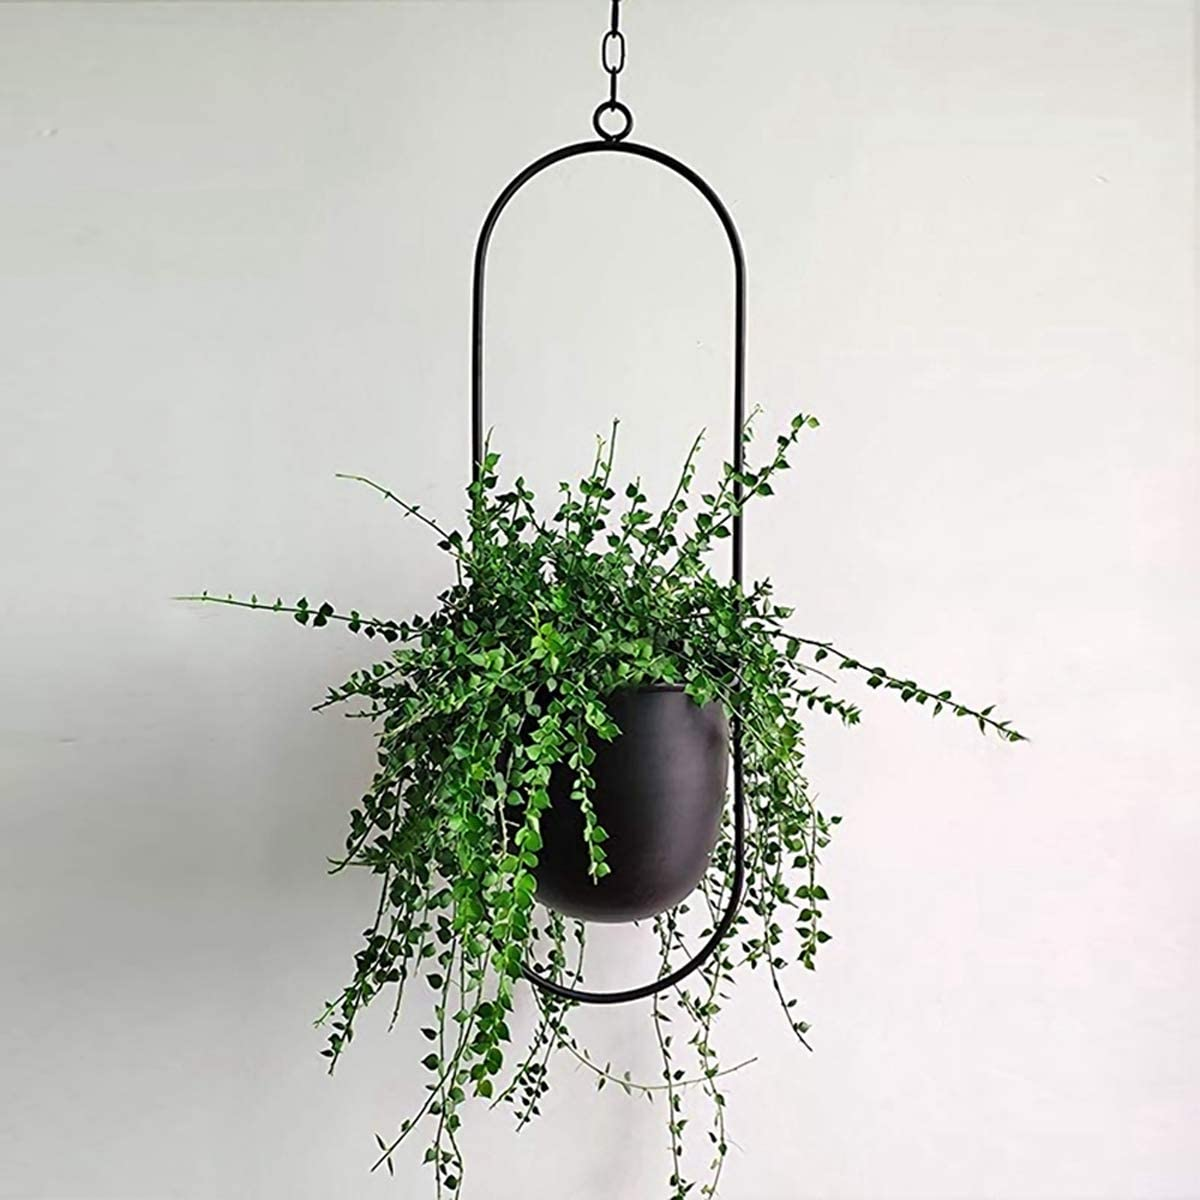 Discount is also underway SPDD Hanging Planters for Manufacturer OFFicial shop Indoor and Plants a with Outdoor Hooks